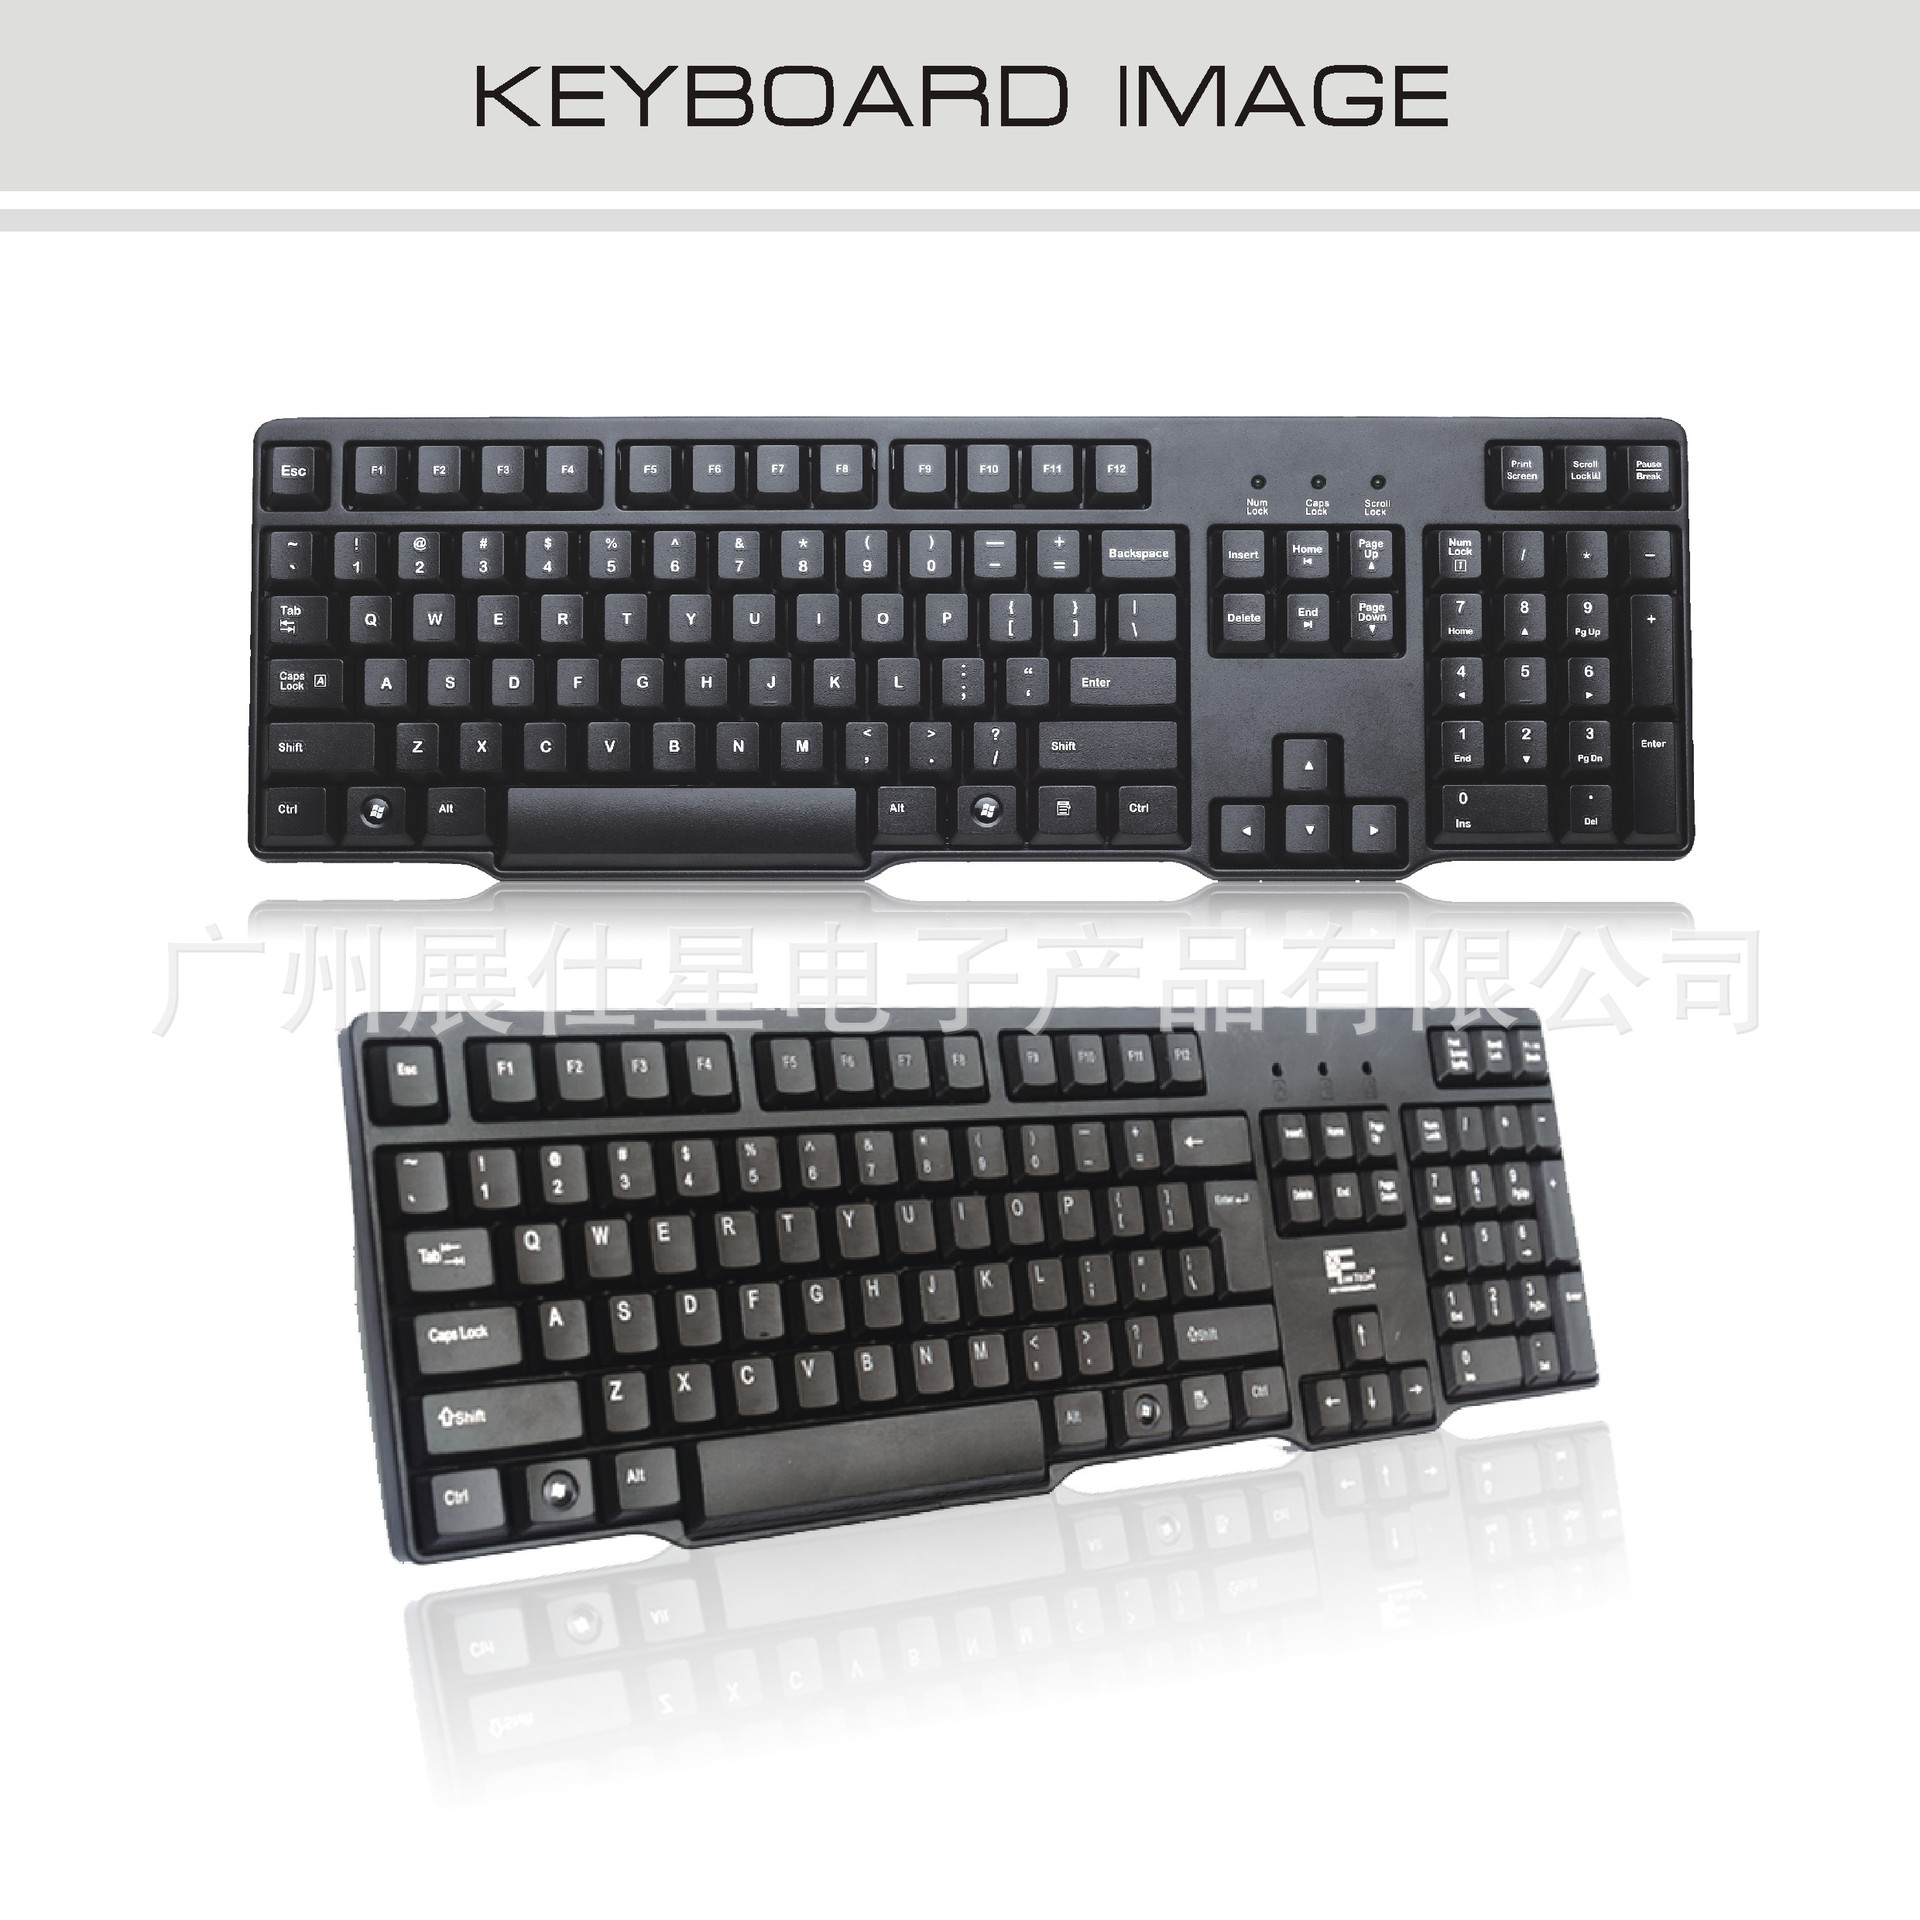 fantech 2 4g multi media wireless keyboard and mouse combo black lazada ph. Black Bedroom Furniture Sets. Home Design Ideas